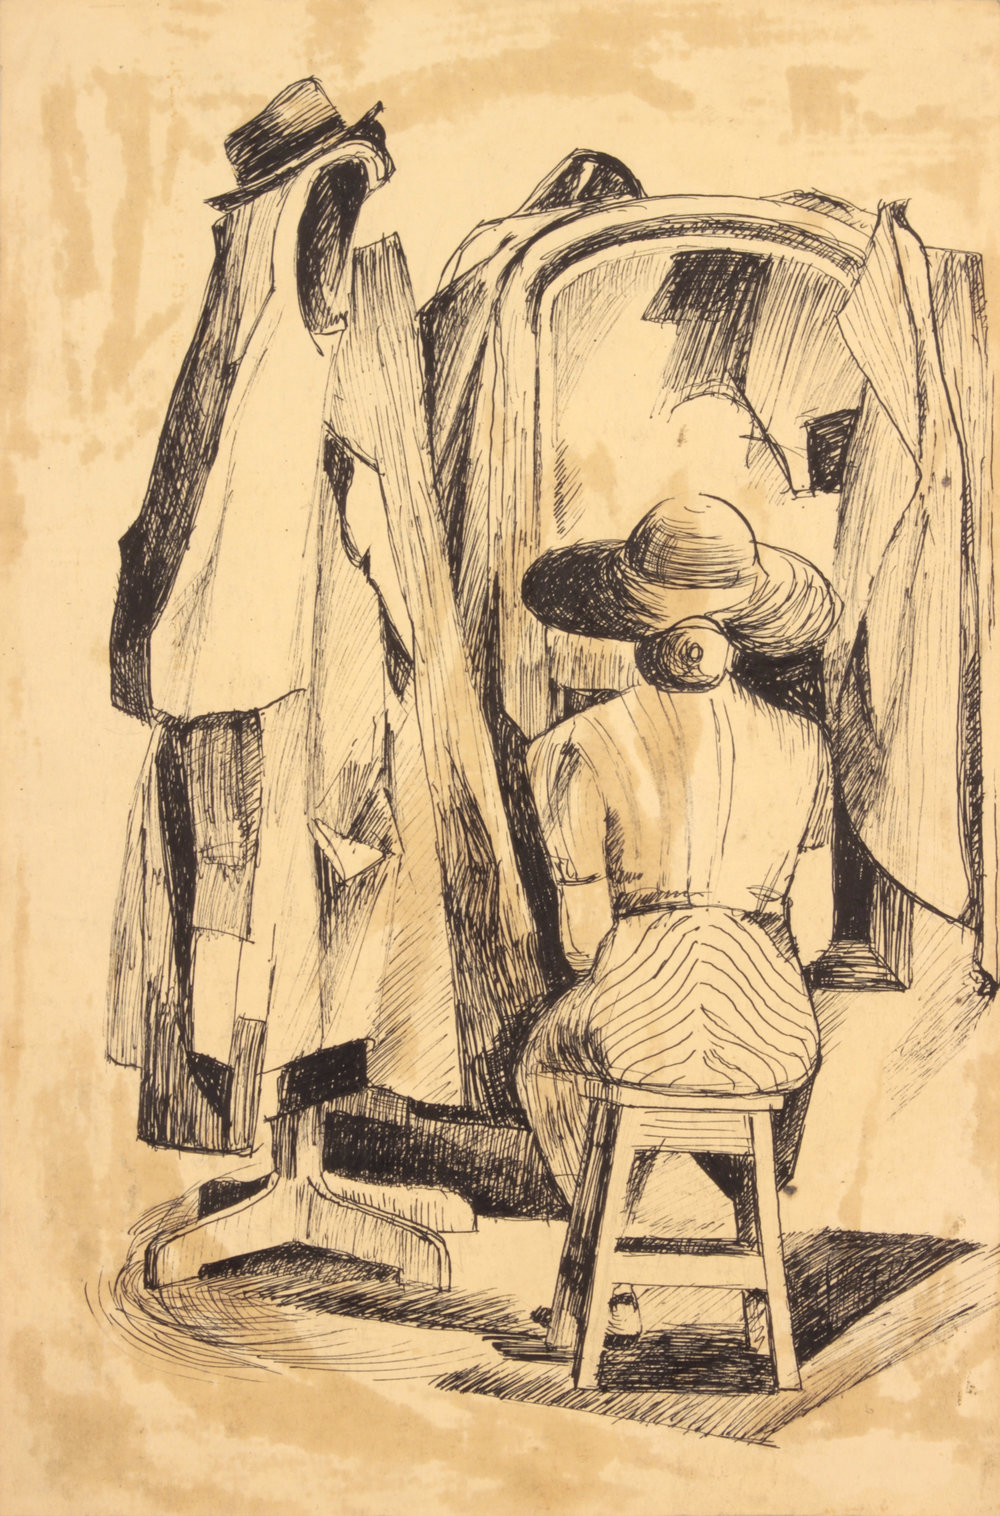 2. 1948-49 c, NT (Seated Lady with Mirror and Coat Hanger), Pen and Ink on Paper, 14.875x9.875, PPS 1448.JPG